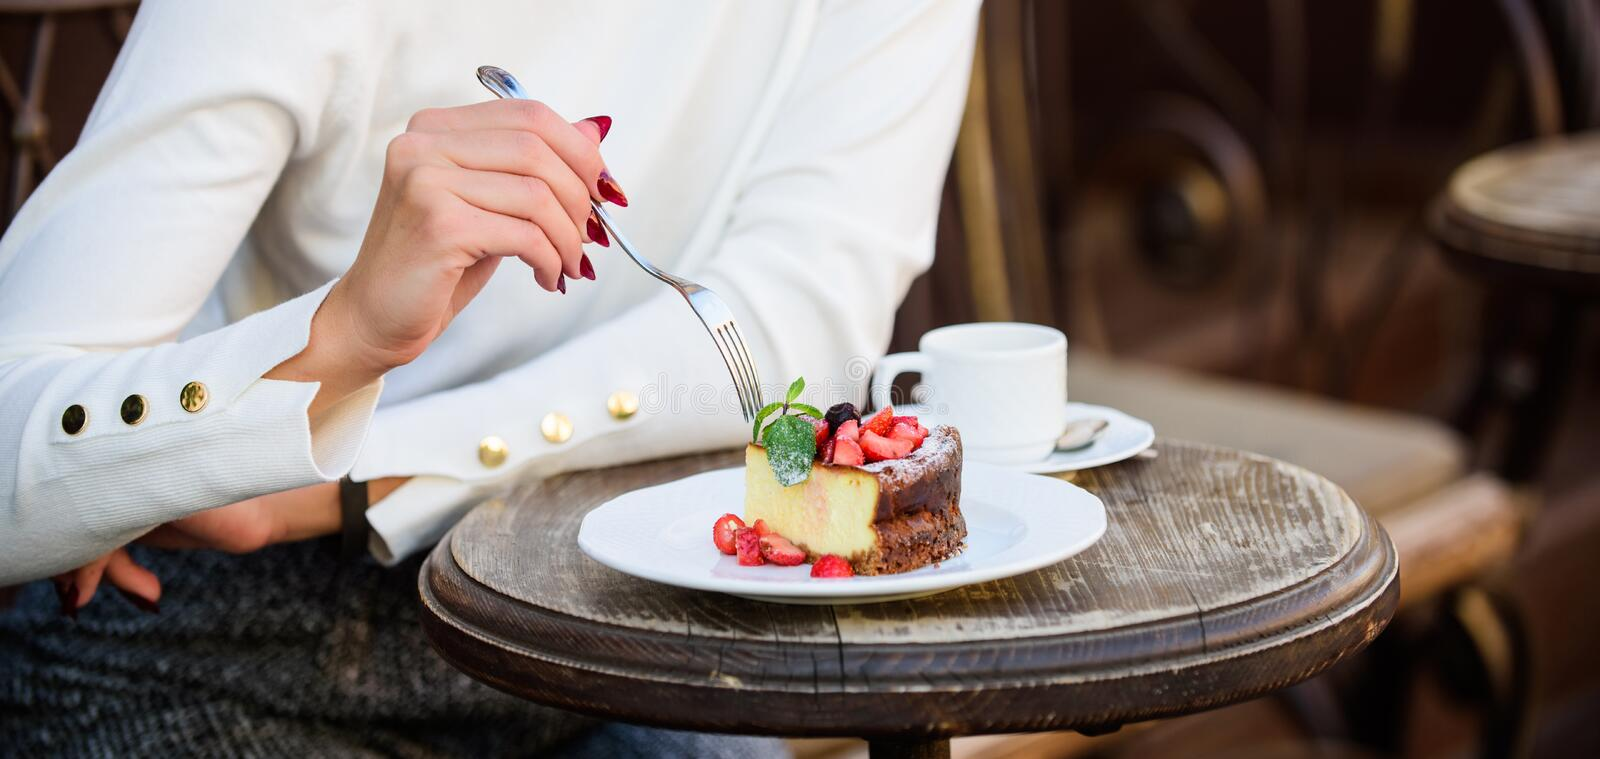 Cake slice on white plate. Cake with cream delicious dessert. Appetite concept. Dessert cake cup of coffee and female stock image